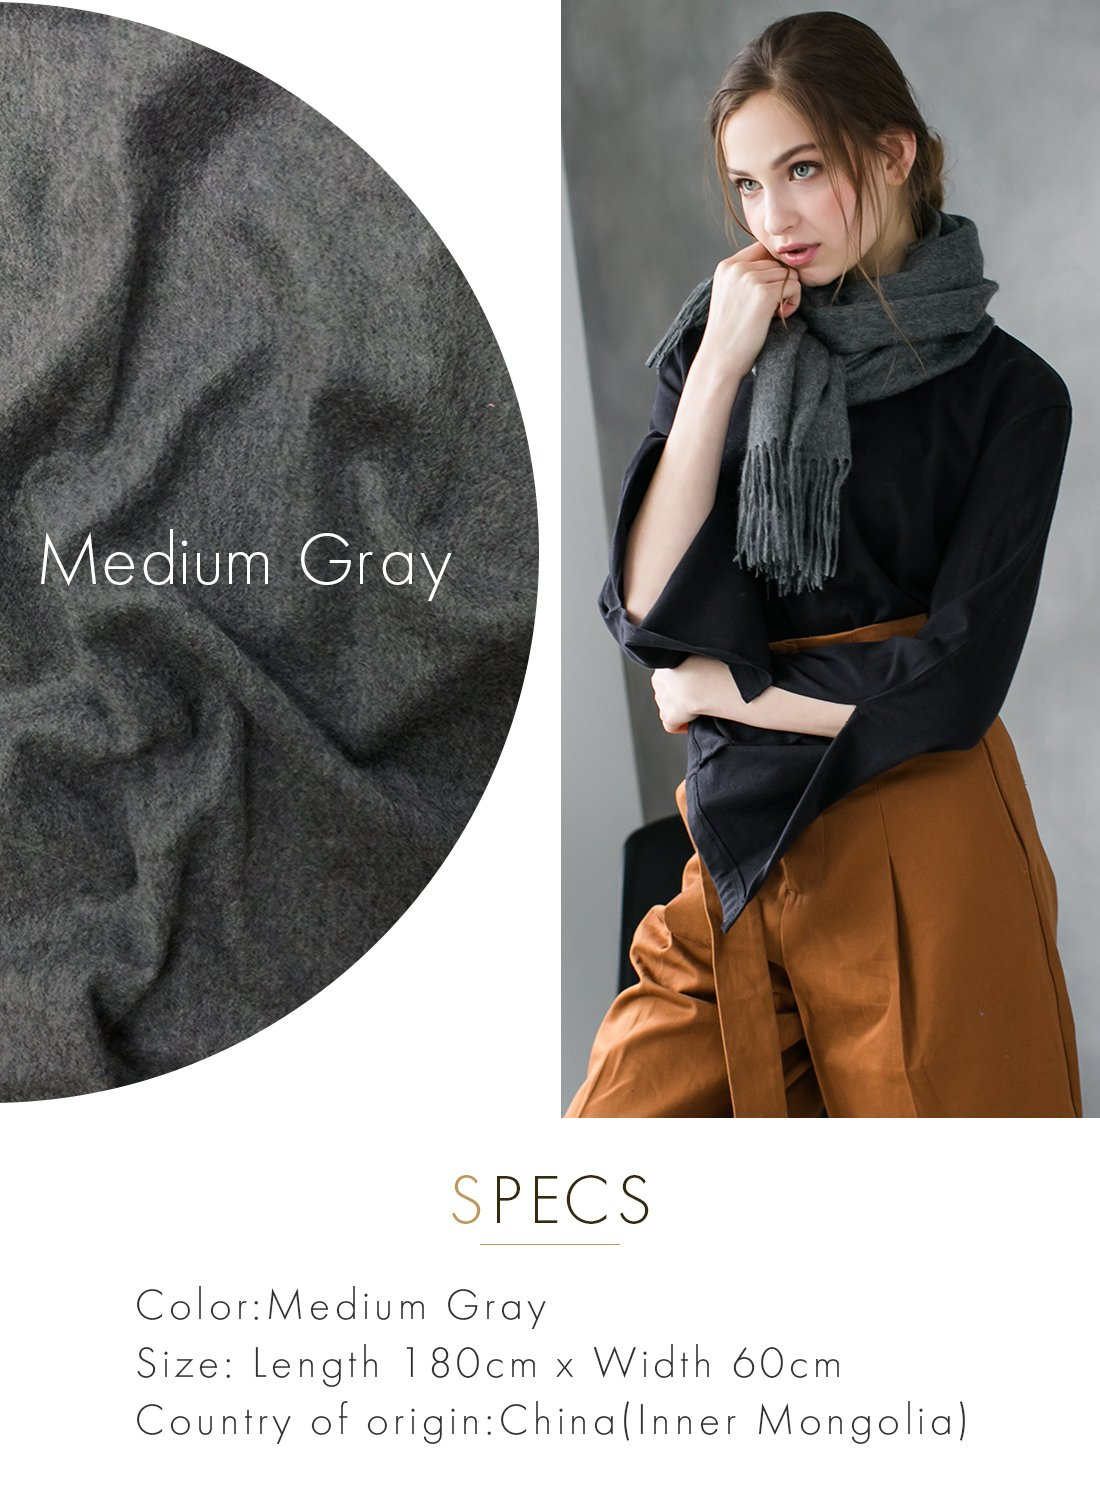 M Gray 100% Cashmere Shawl Stole Women's 2017 Gift Scarves Wrap Blanket A0514B2-5 by matti totti (Image #2)